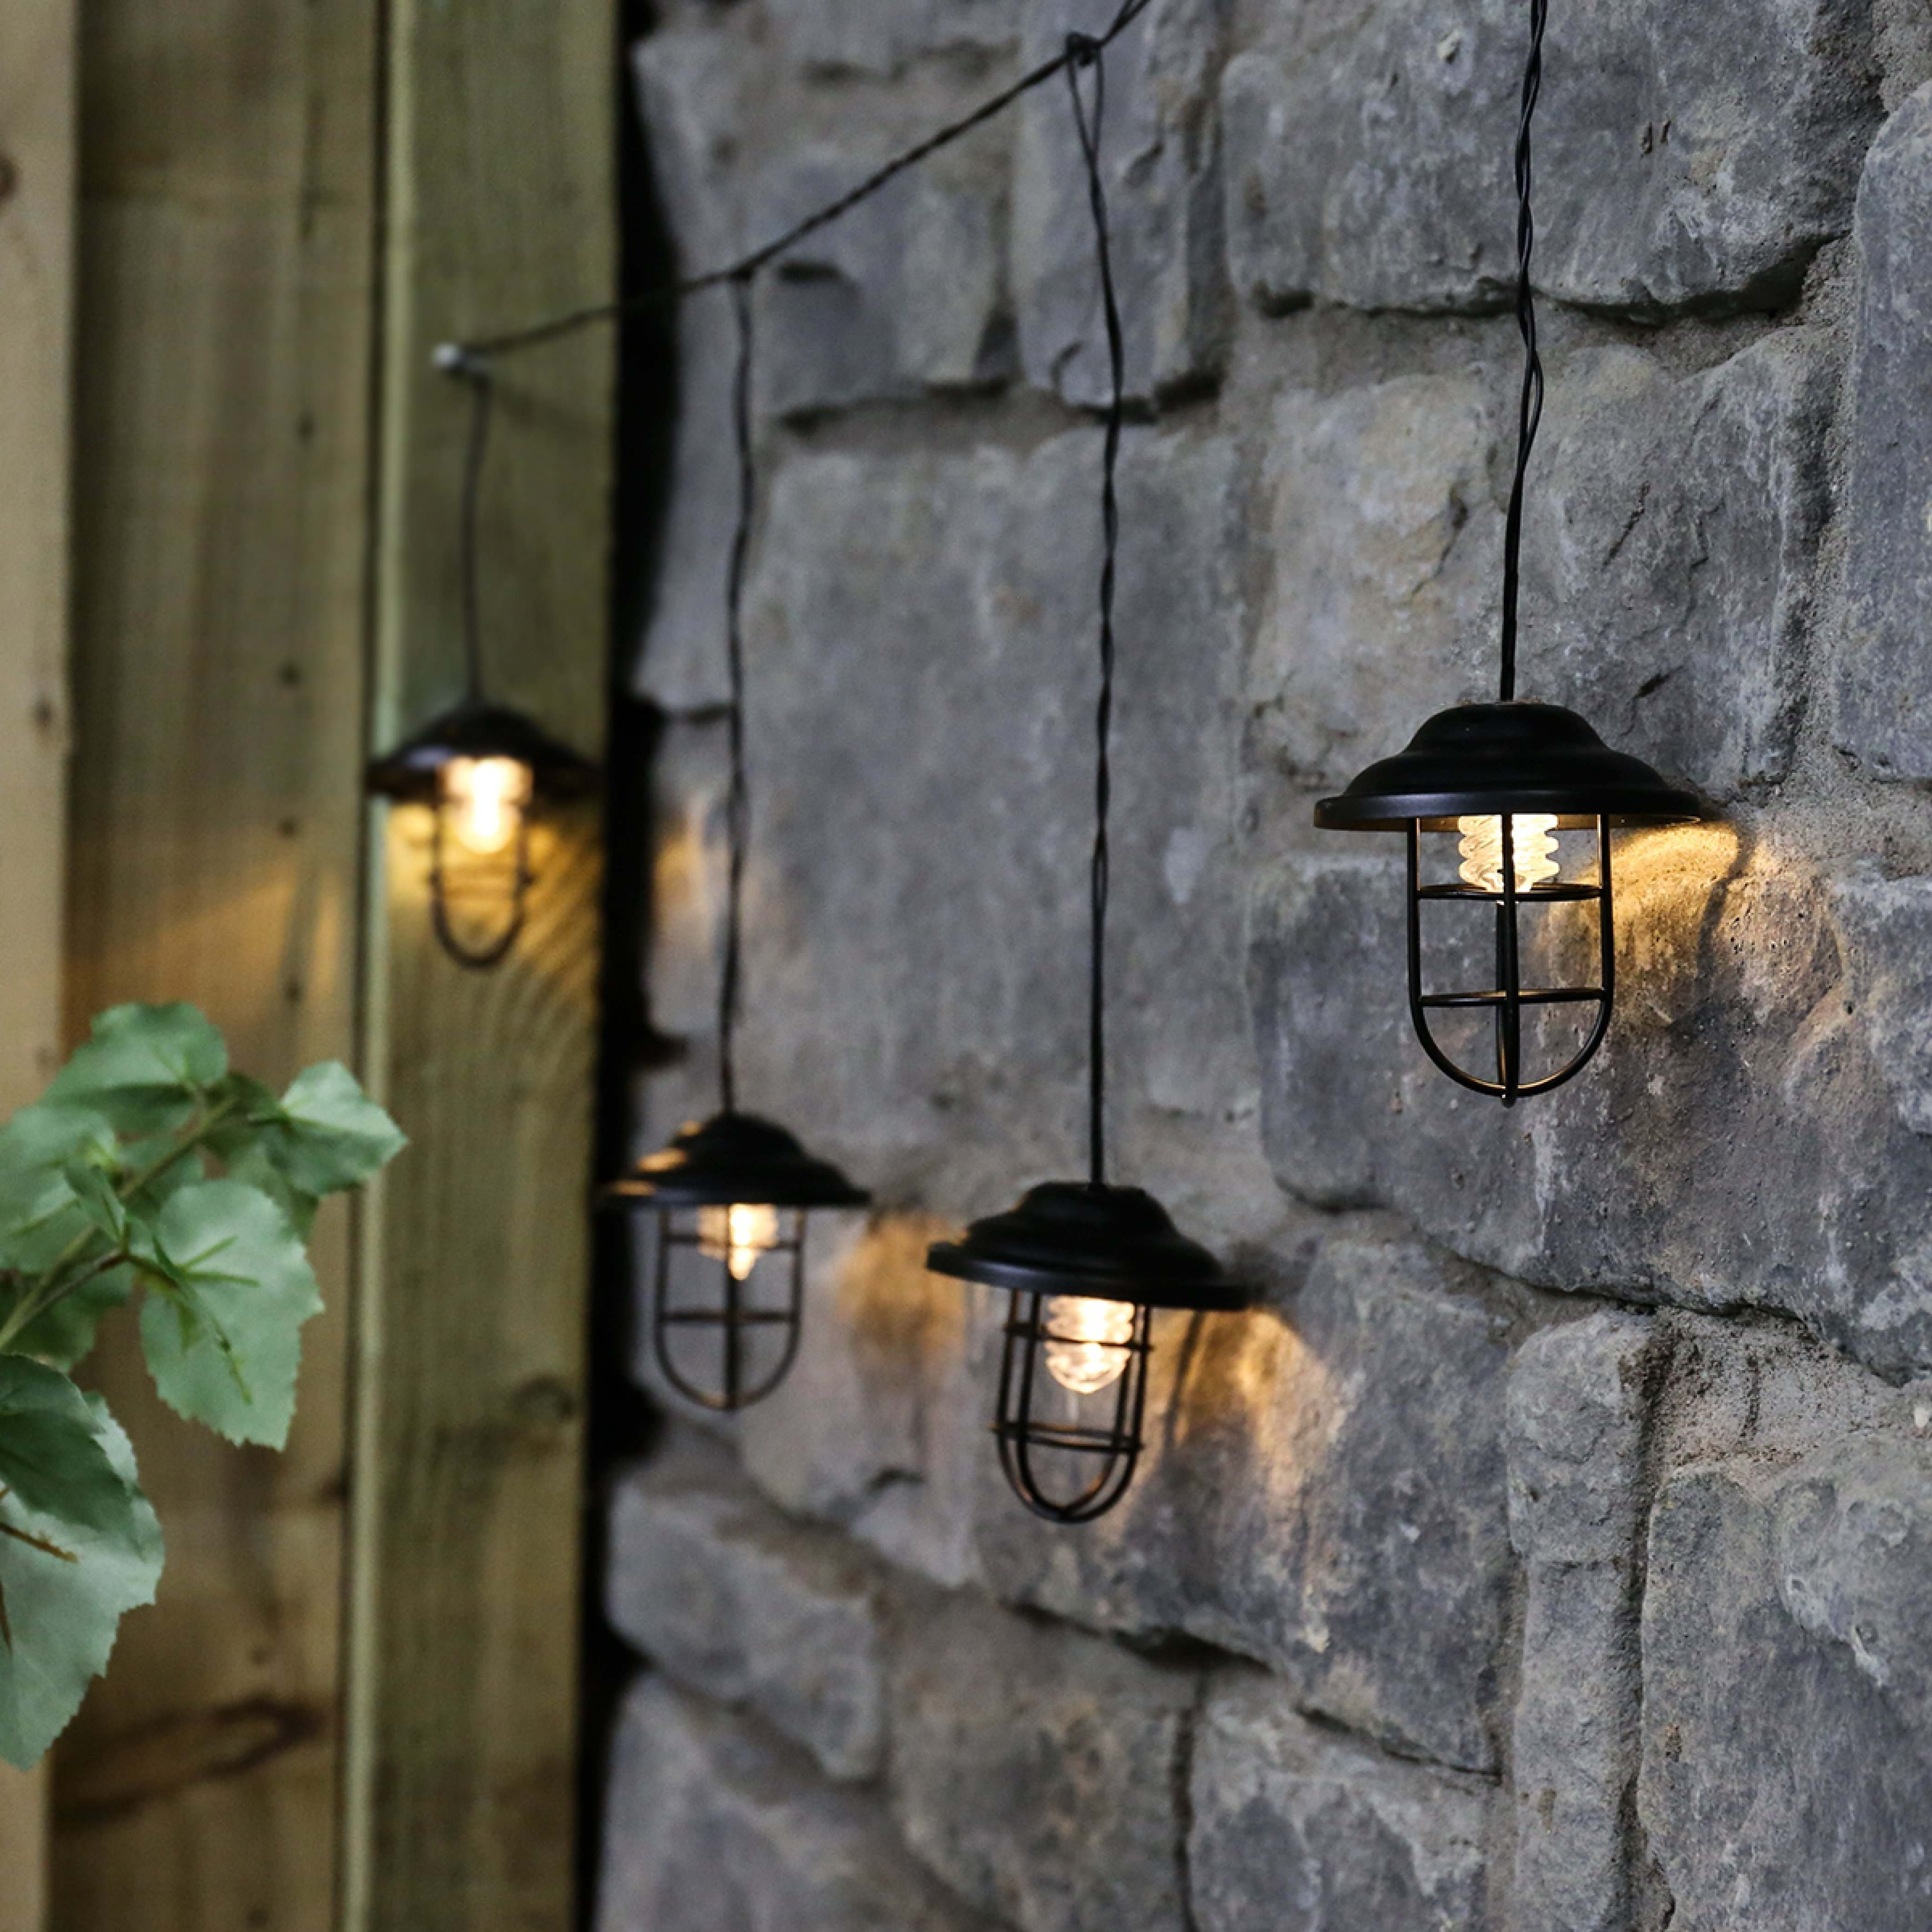 Outdoor Metal Plug In Lantern String Lights, Warm White Leds, 1m In Best And Newest Plug In Outdoor Lanterns (View 14 of 20)